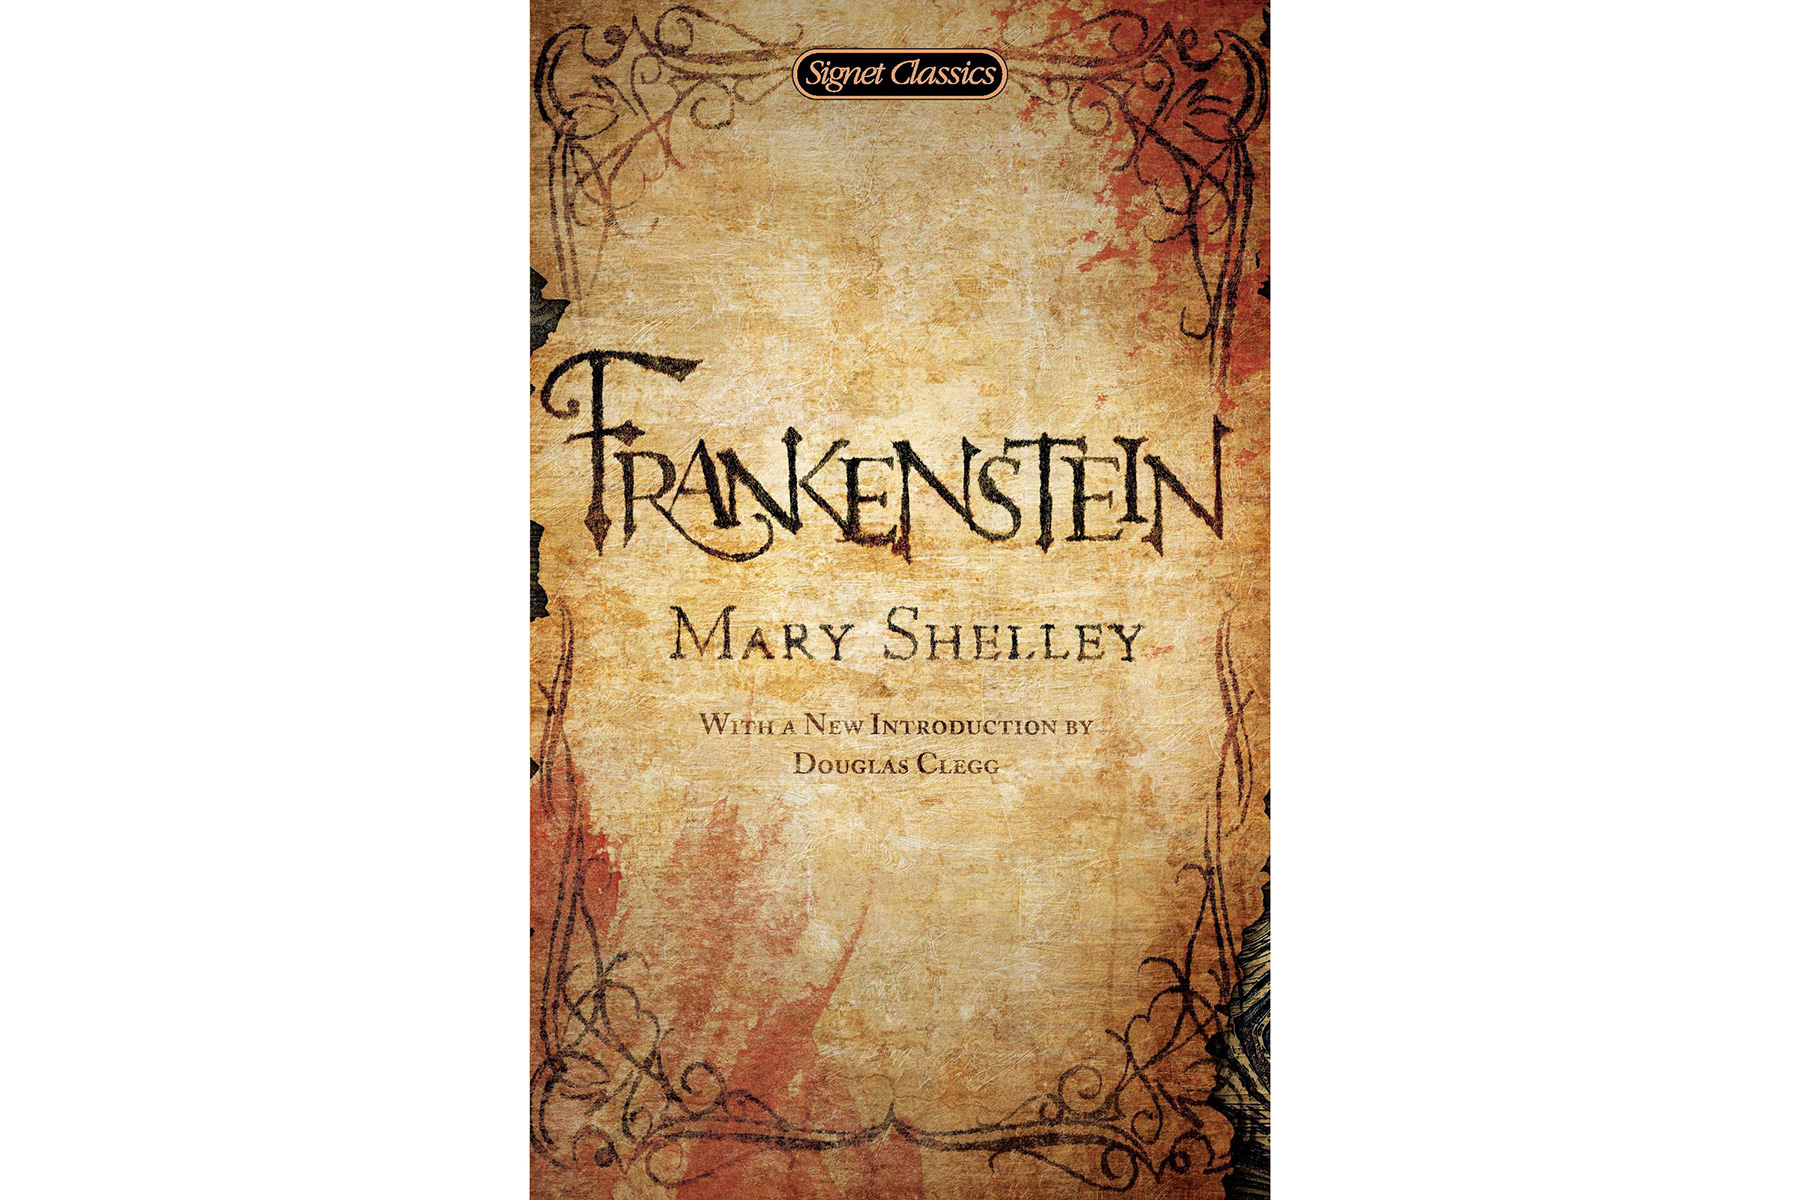 Frankenstein, by Mary Shelley (BRIDGE BOOKS)